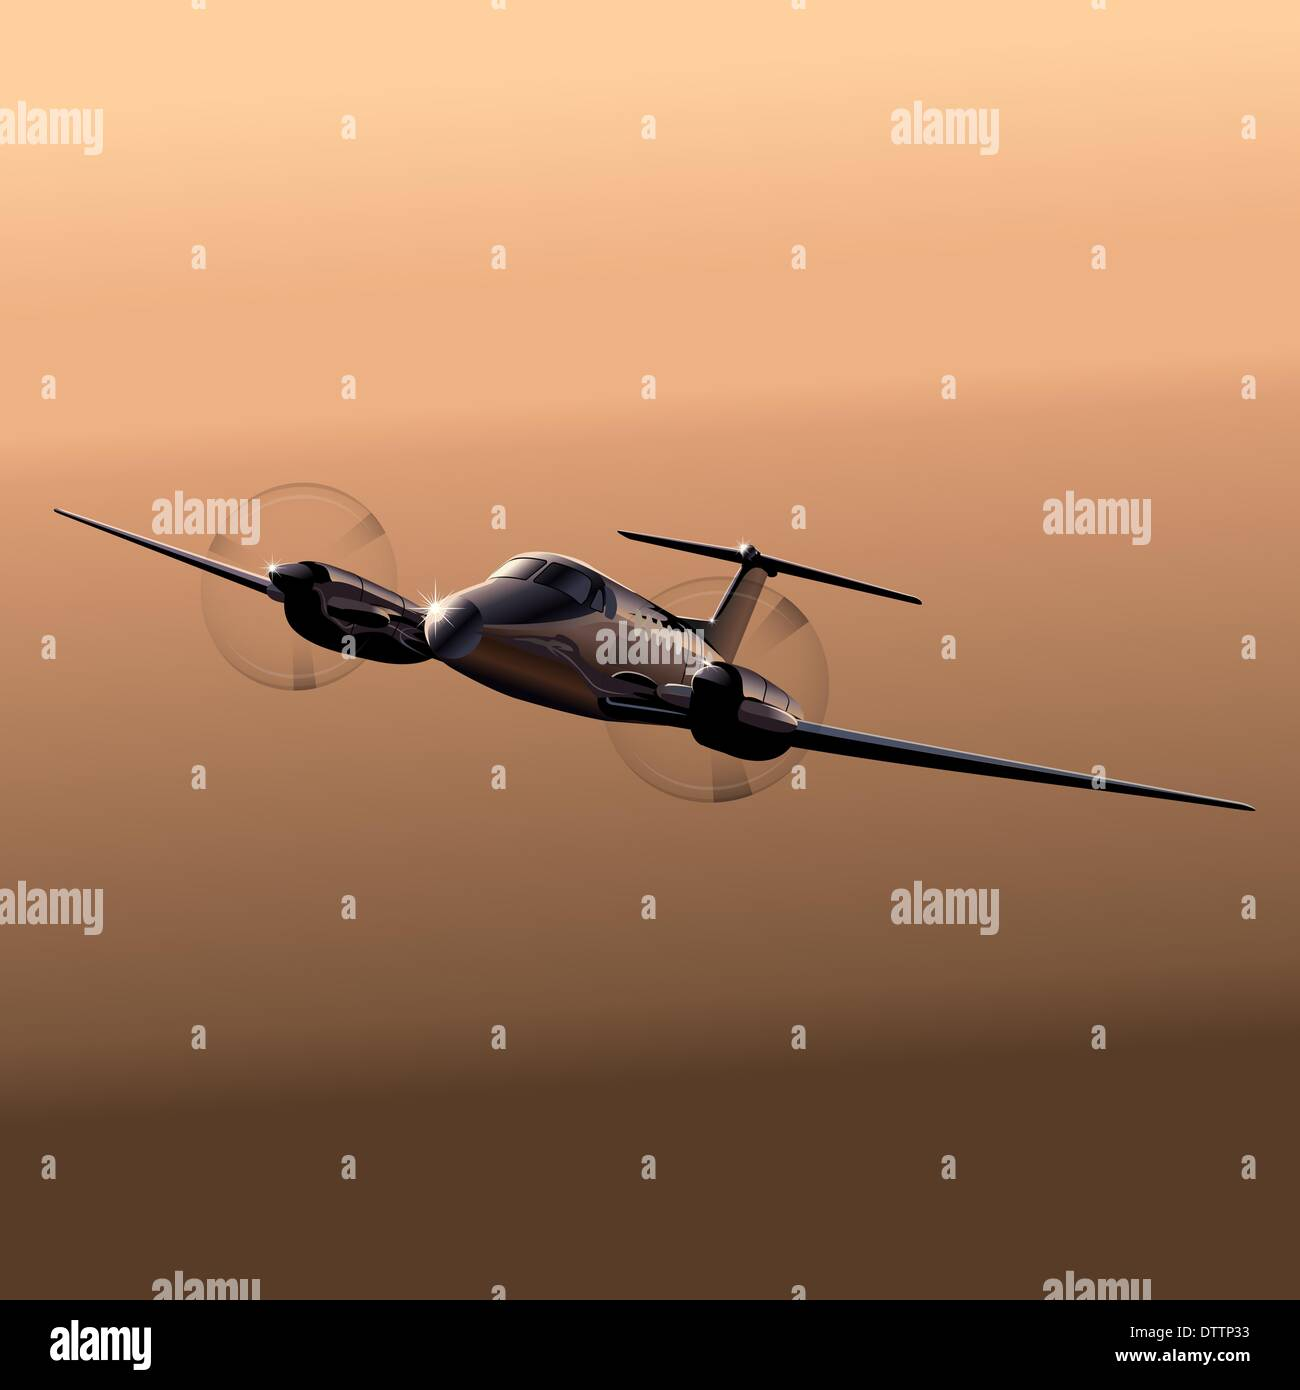 Civil utility aircraft - Stock Image